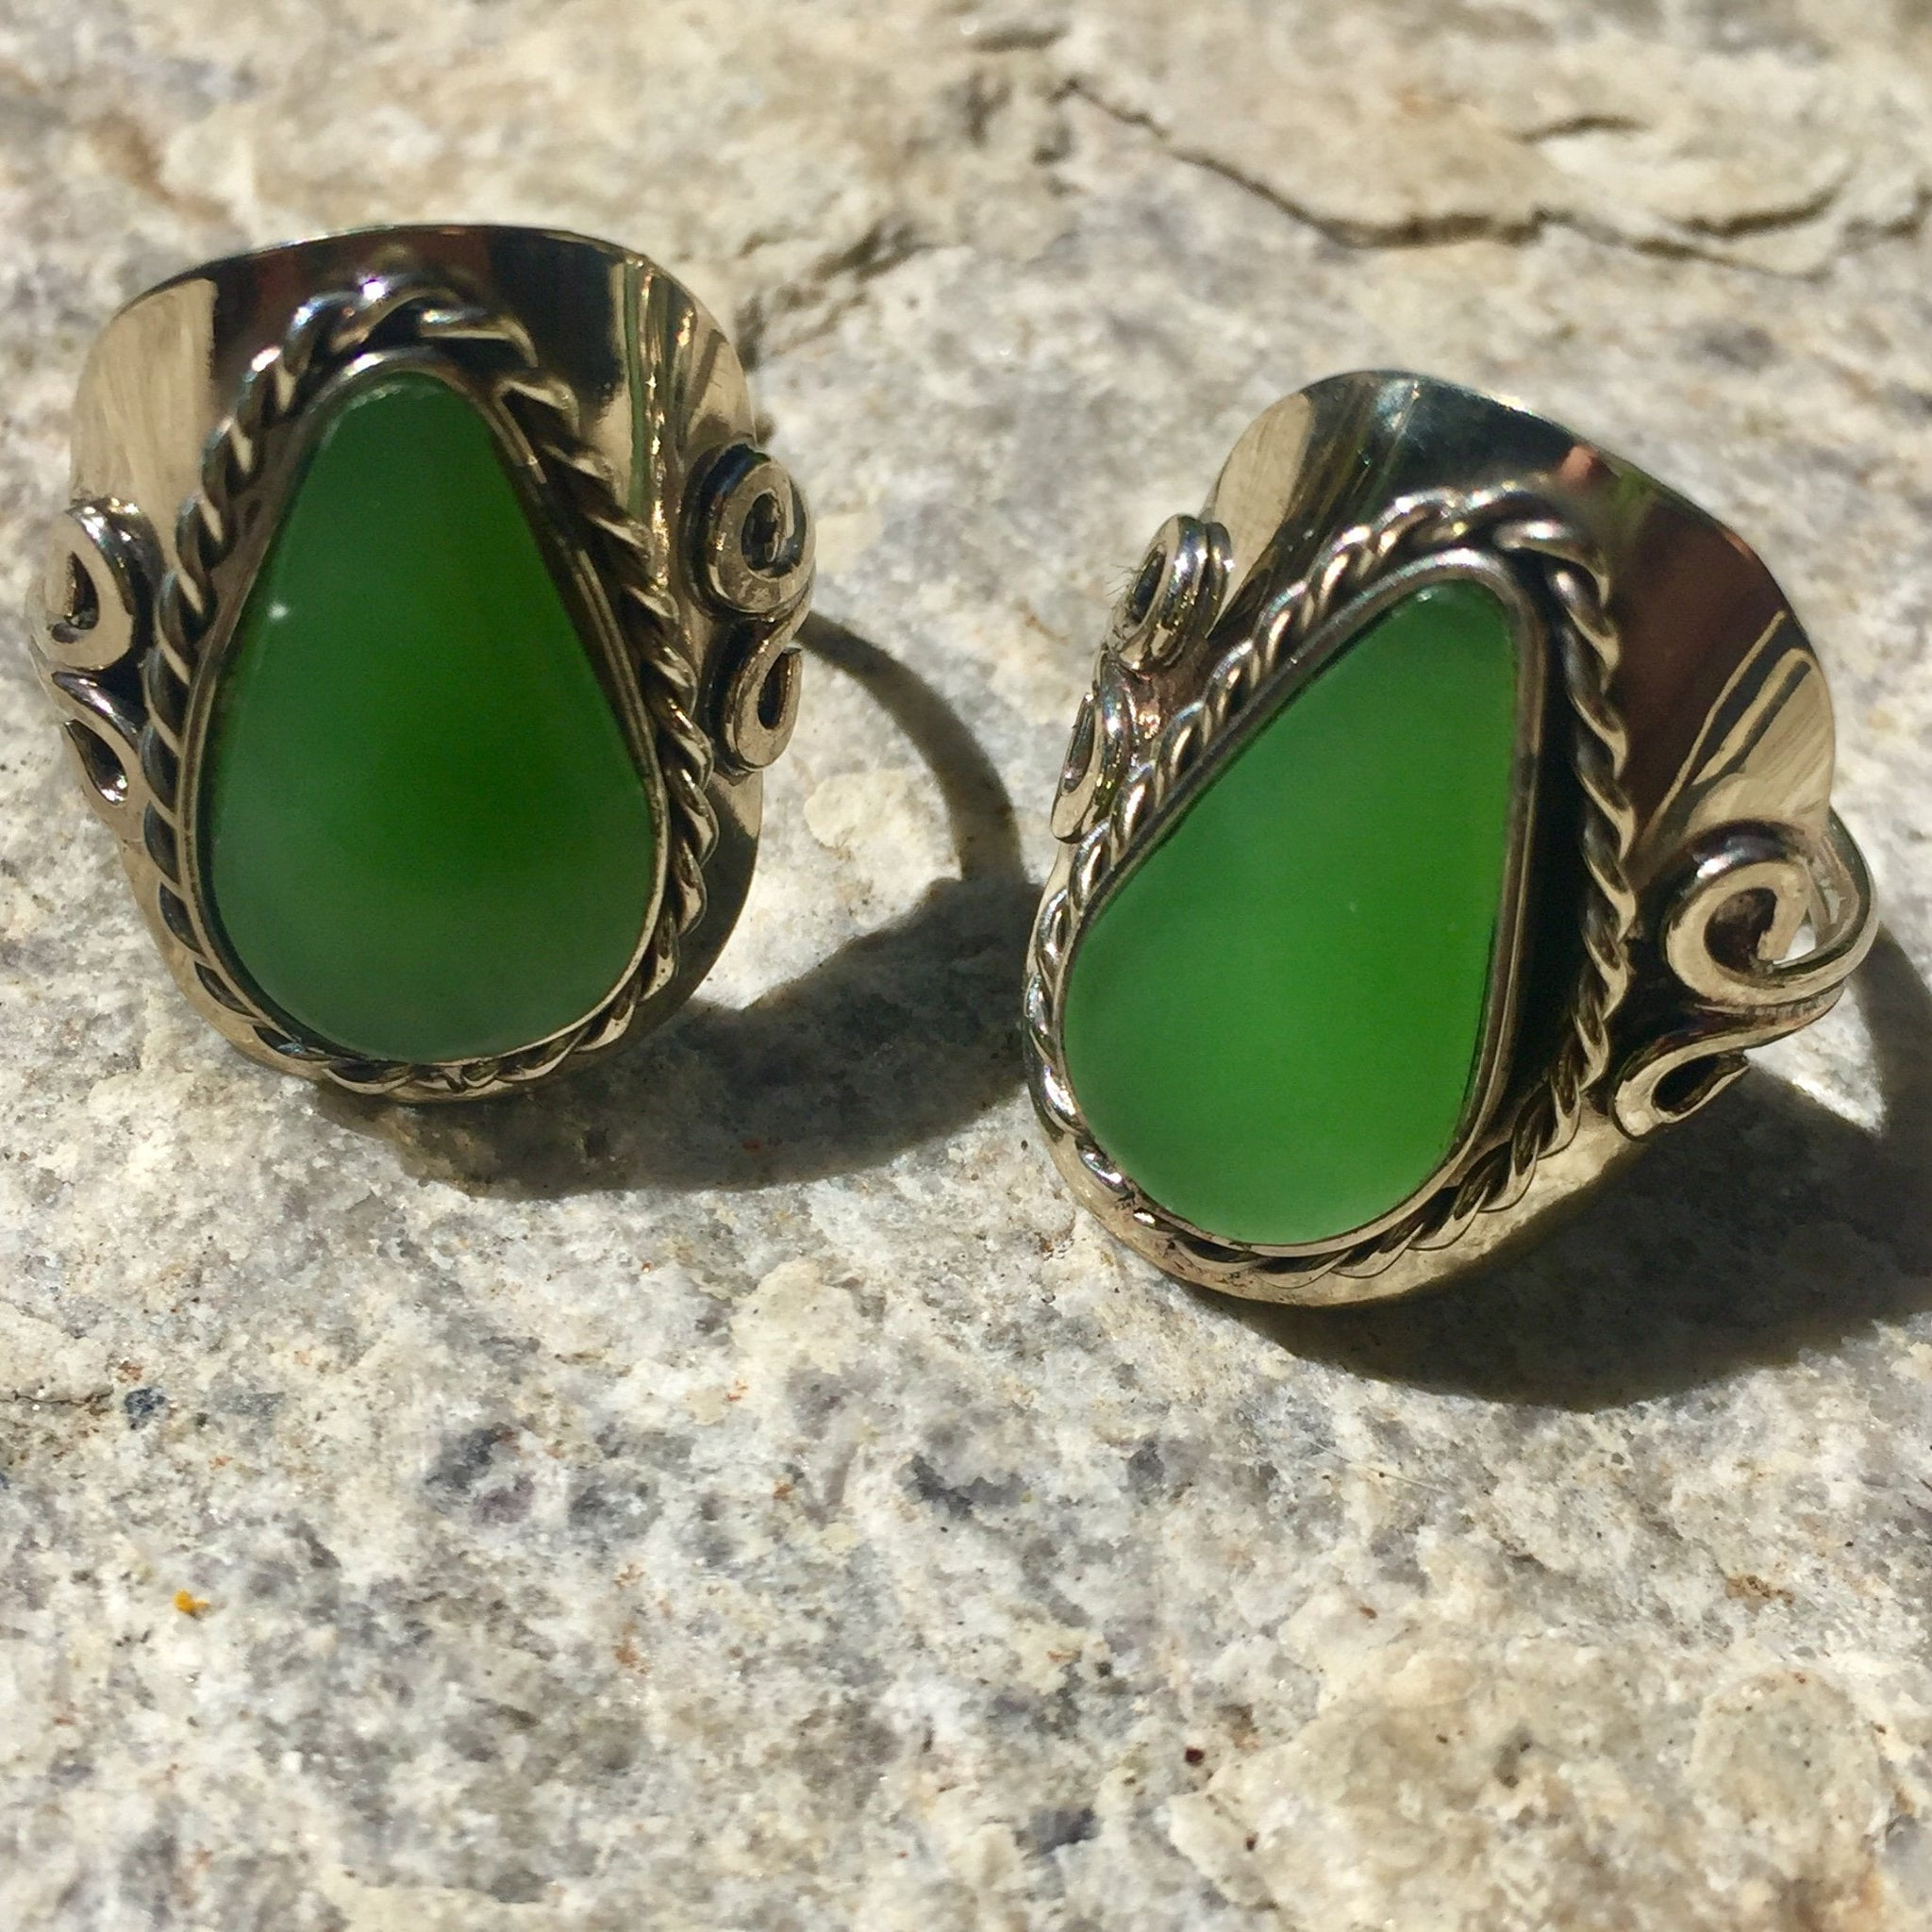 Peruvian Jade Ring - Sparkle Rock Pop